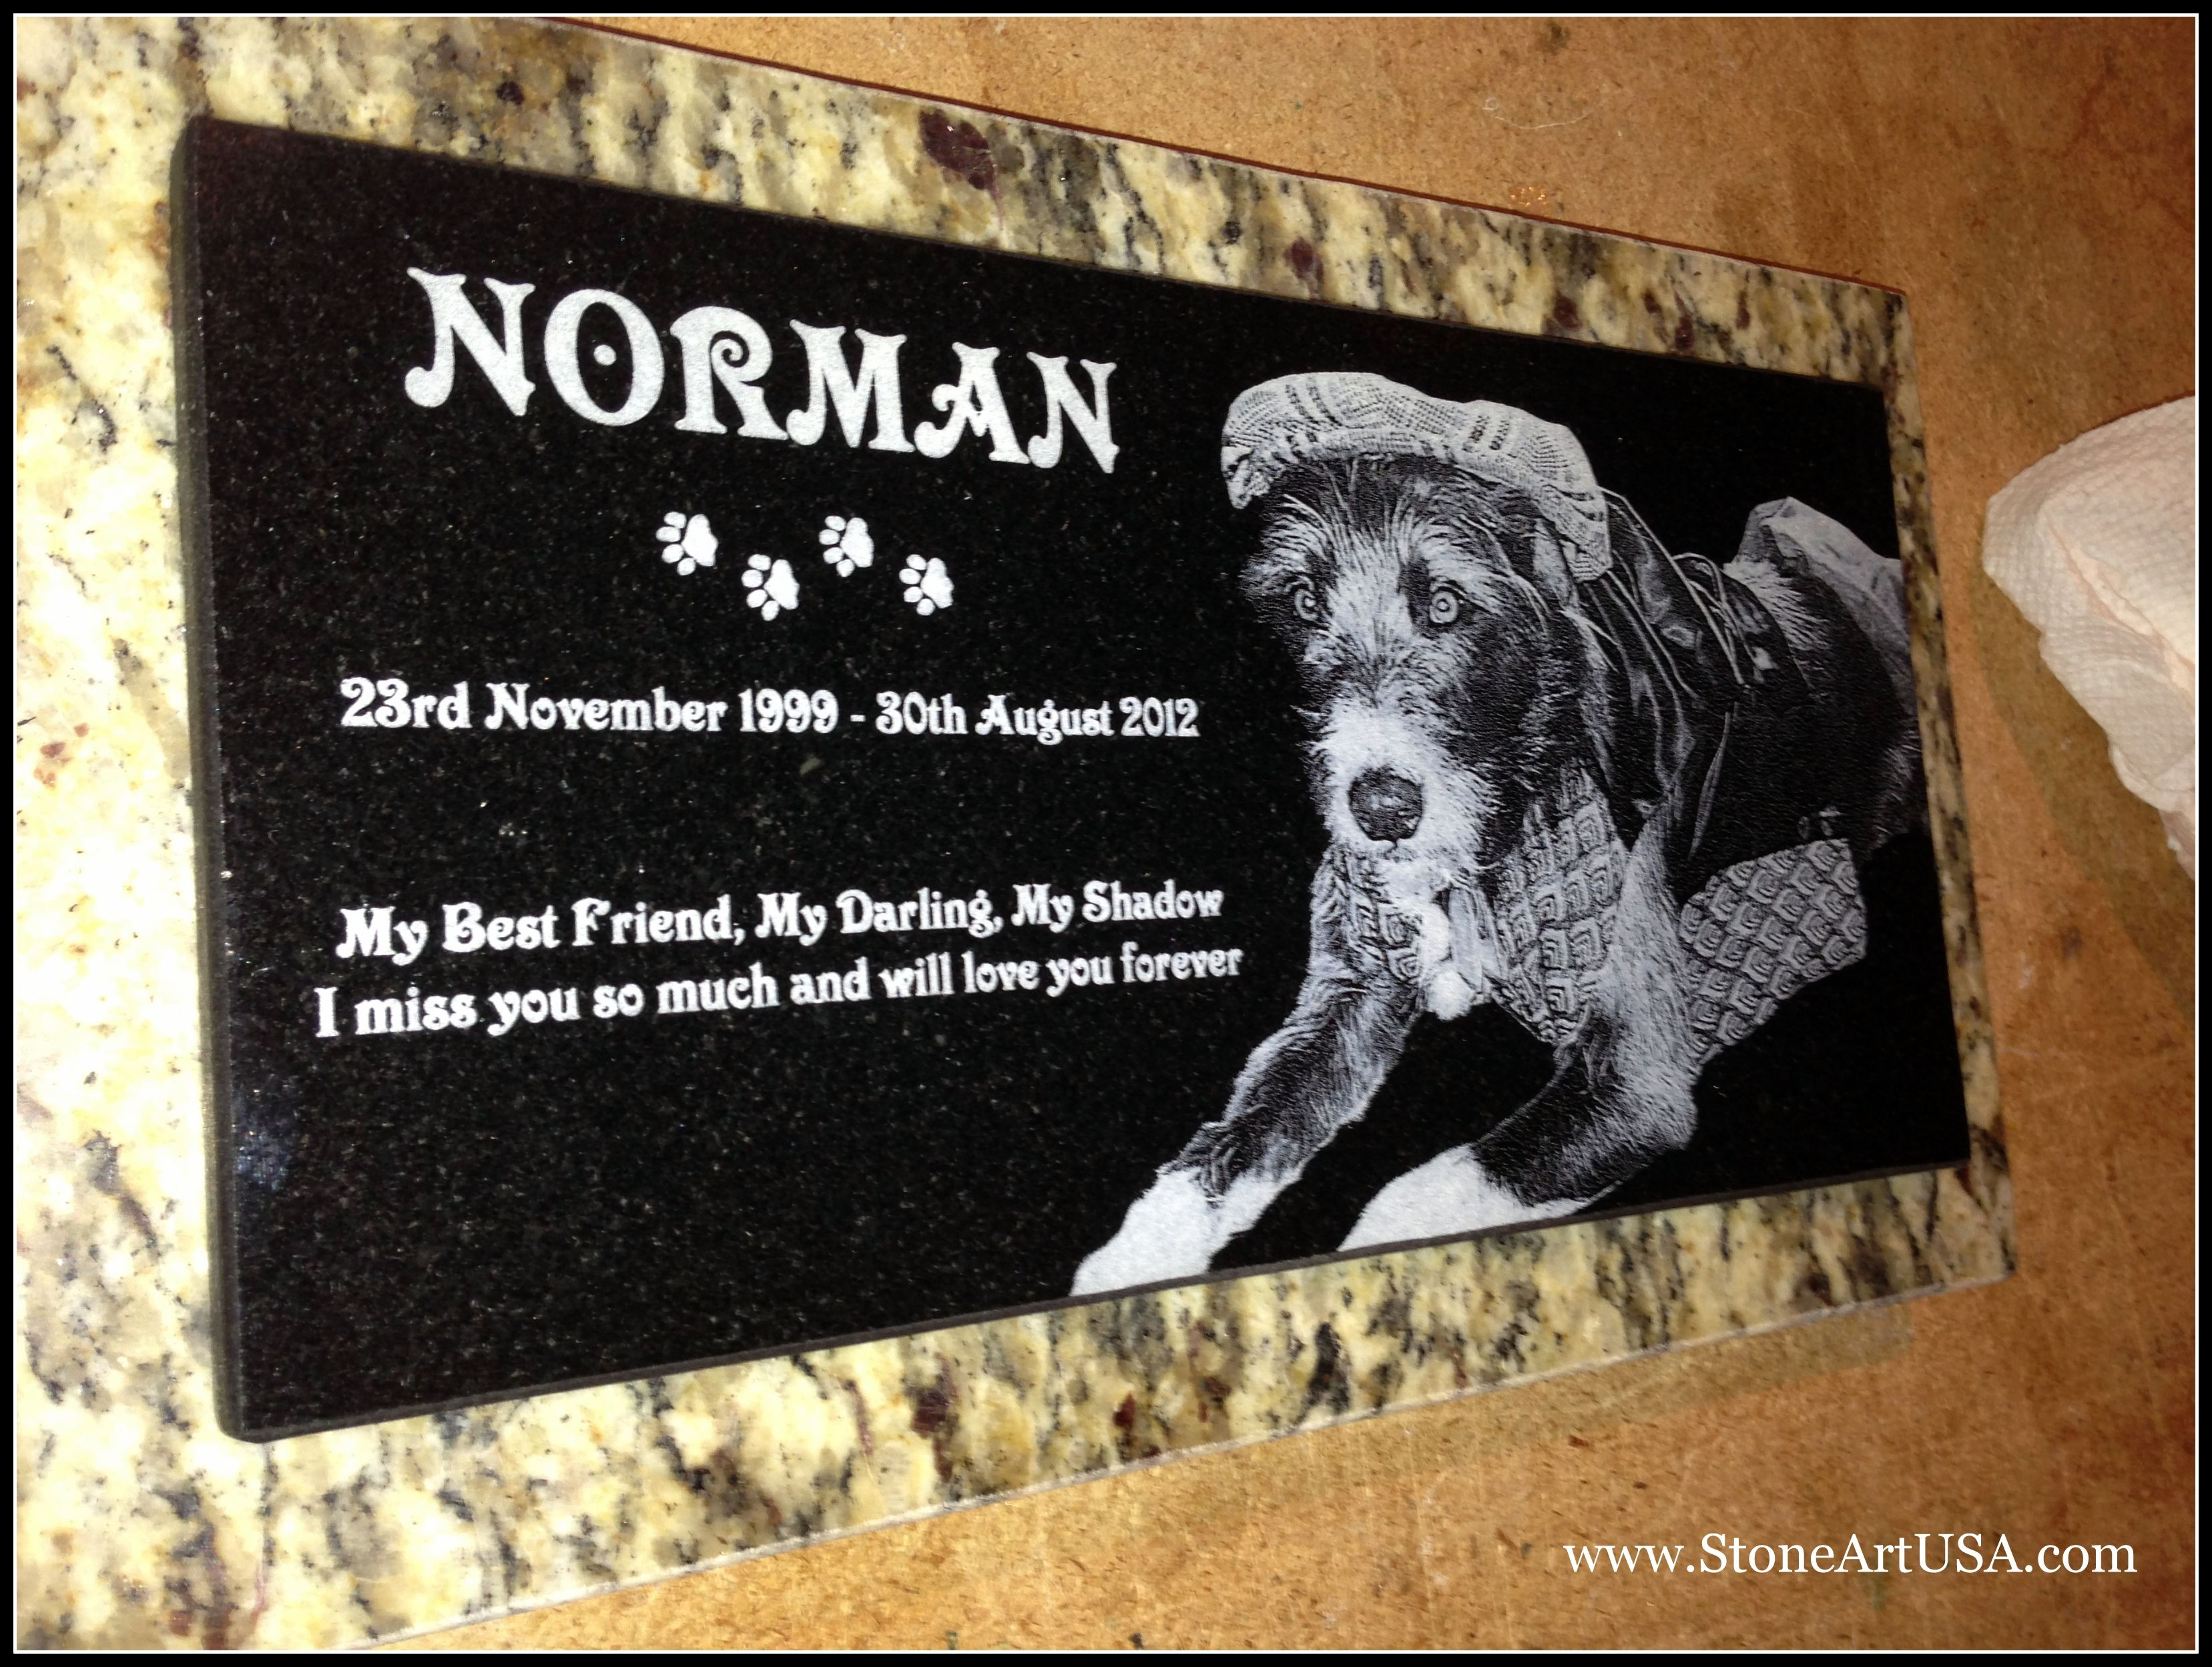 New Ideas for Pet Grave Stones ... Custom made memorial stones & cremation urns for pets. The granite is laser etched with your pet's photo and your words. Markers will stay beautiful for generations in the yard or cemetery. Memorial stones can be made for people too as well as for our beloved dogs, cats & all pets. See more at www.StoneArtUSA.com Let me know if you have any questions, Eric @ StoneArtUSA